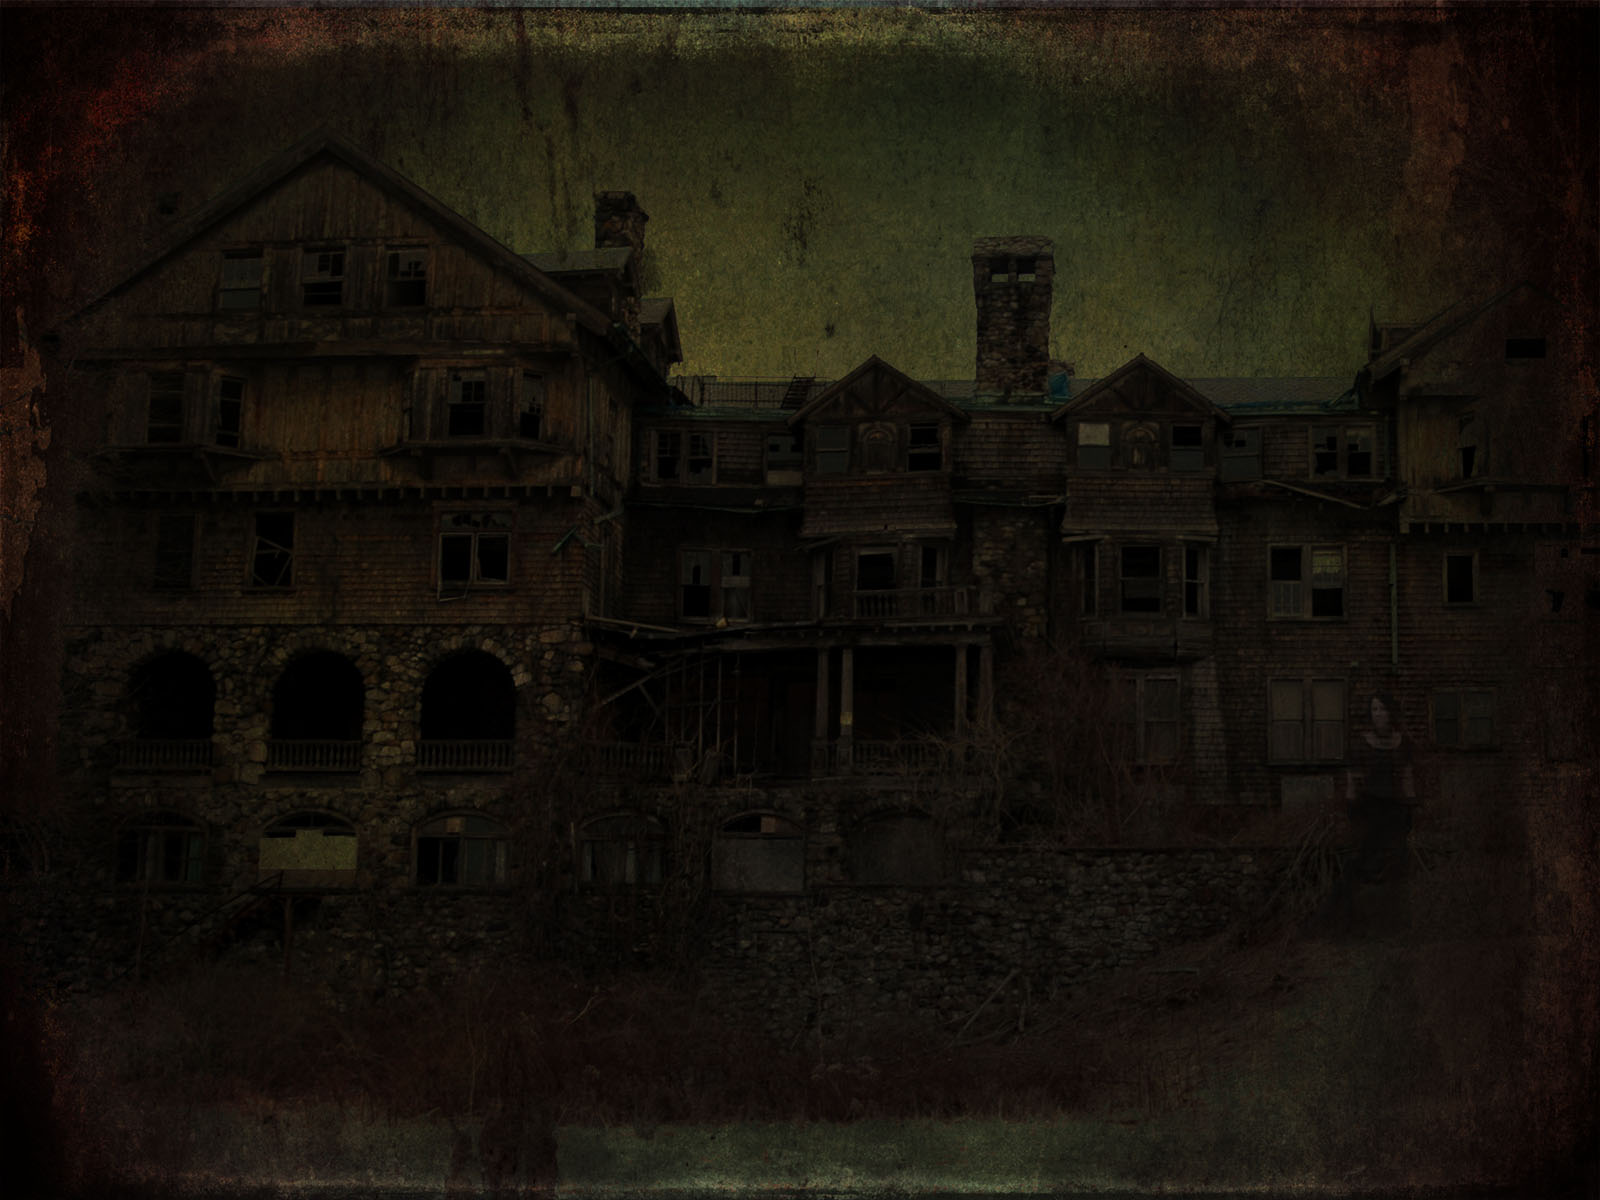 wallpaperstocknethaunted house wallpapers 34719 1600x1200 1html 1600x1200